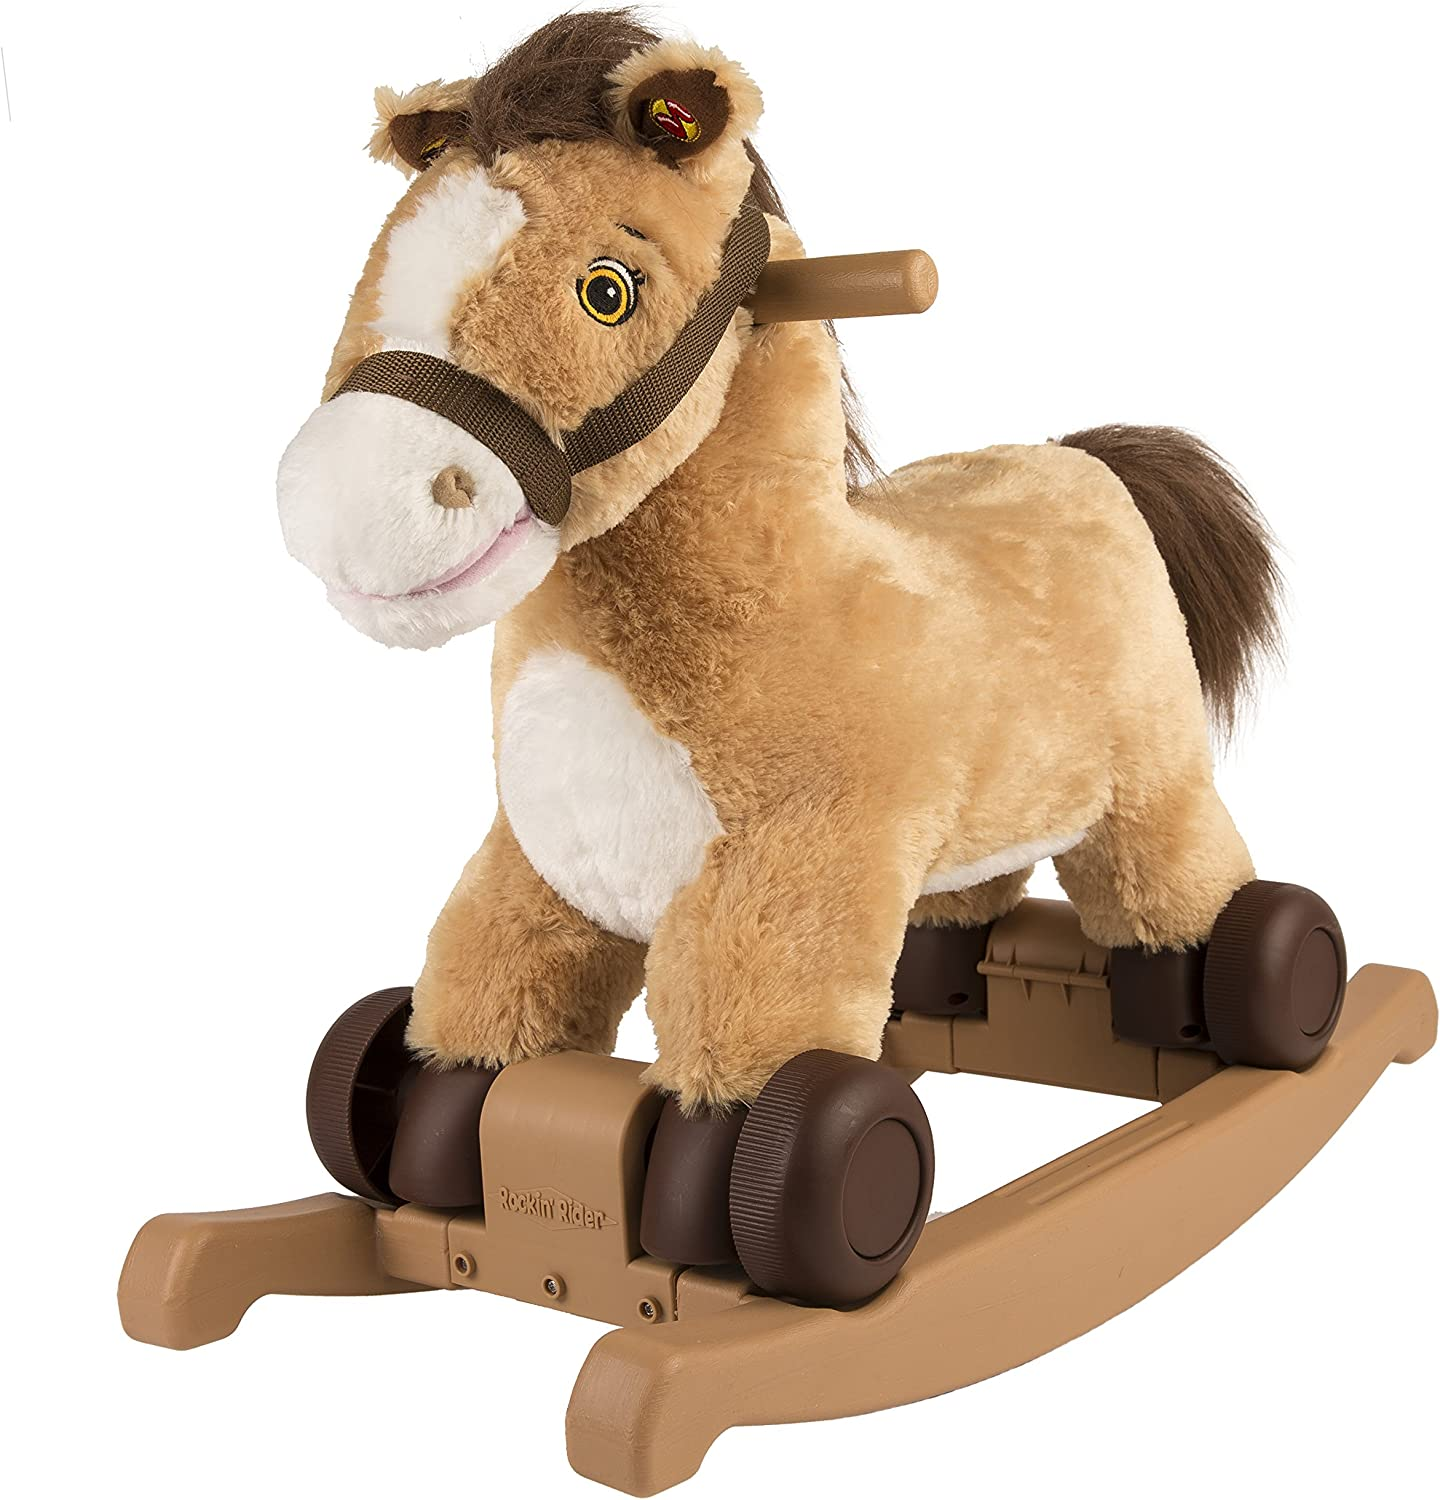 Rockin Rider Charger 2-in-1 Rocking Pony Discontinued by manufacturer